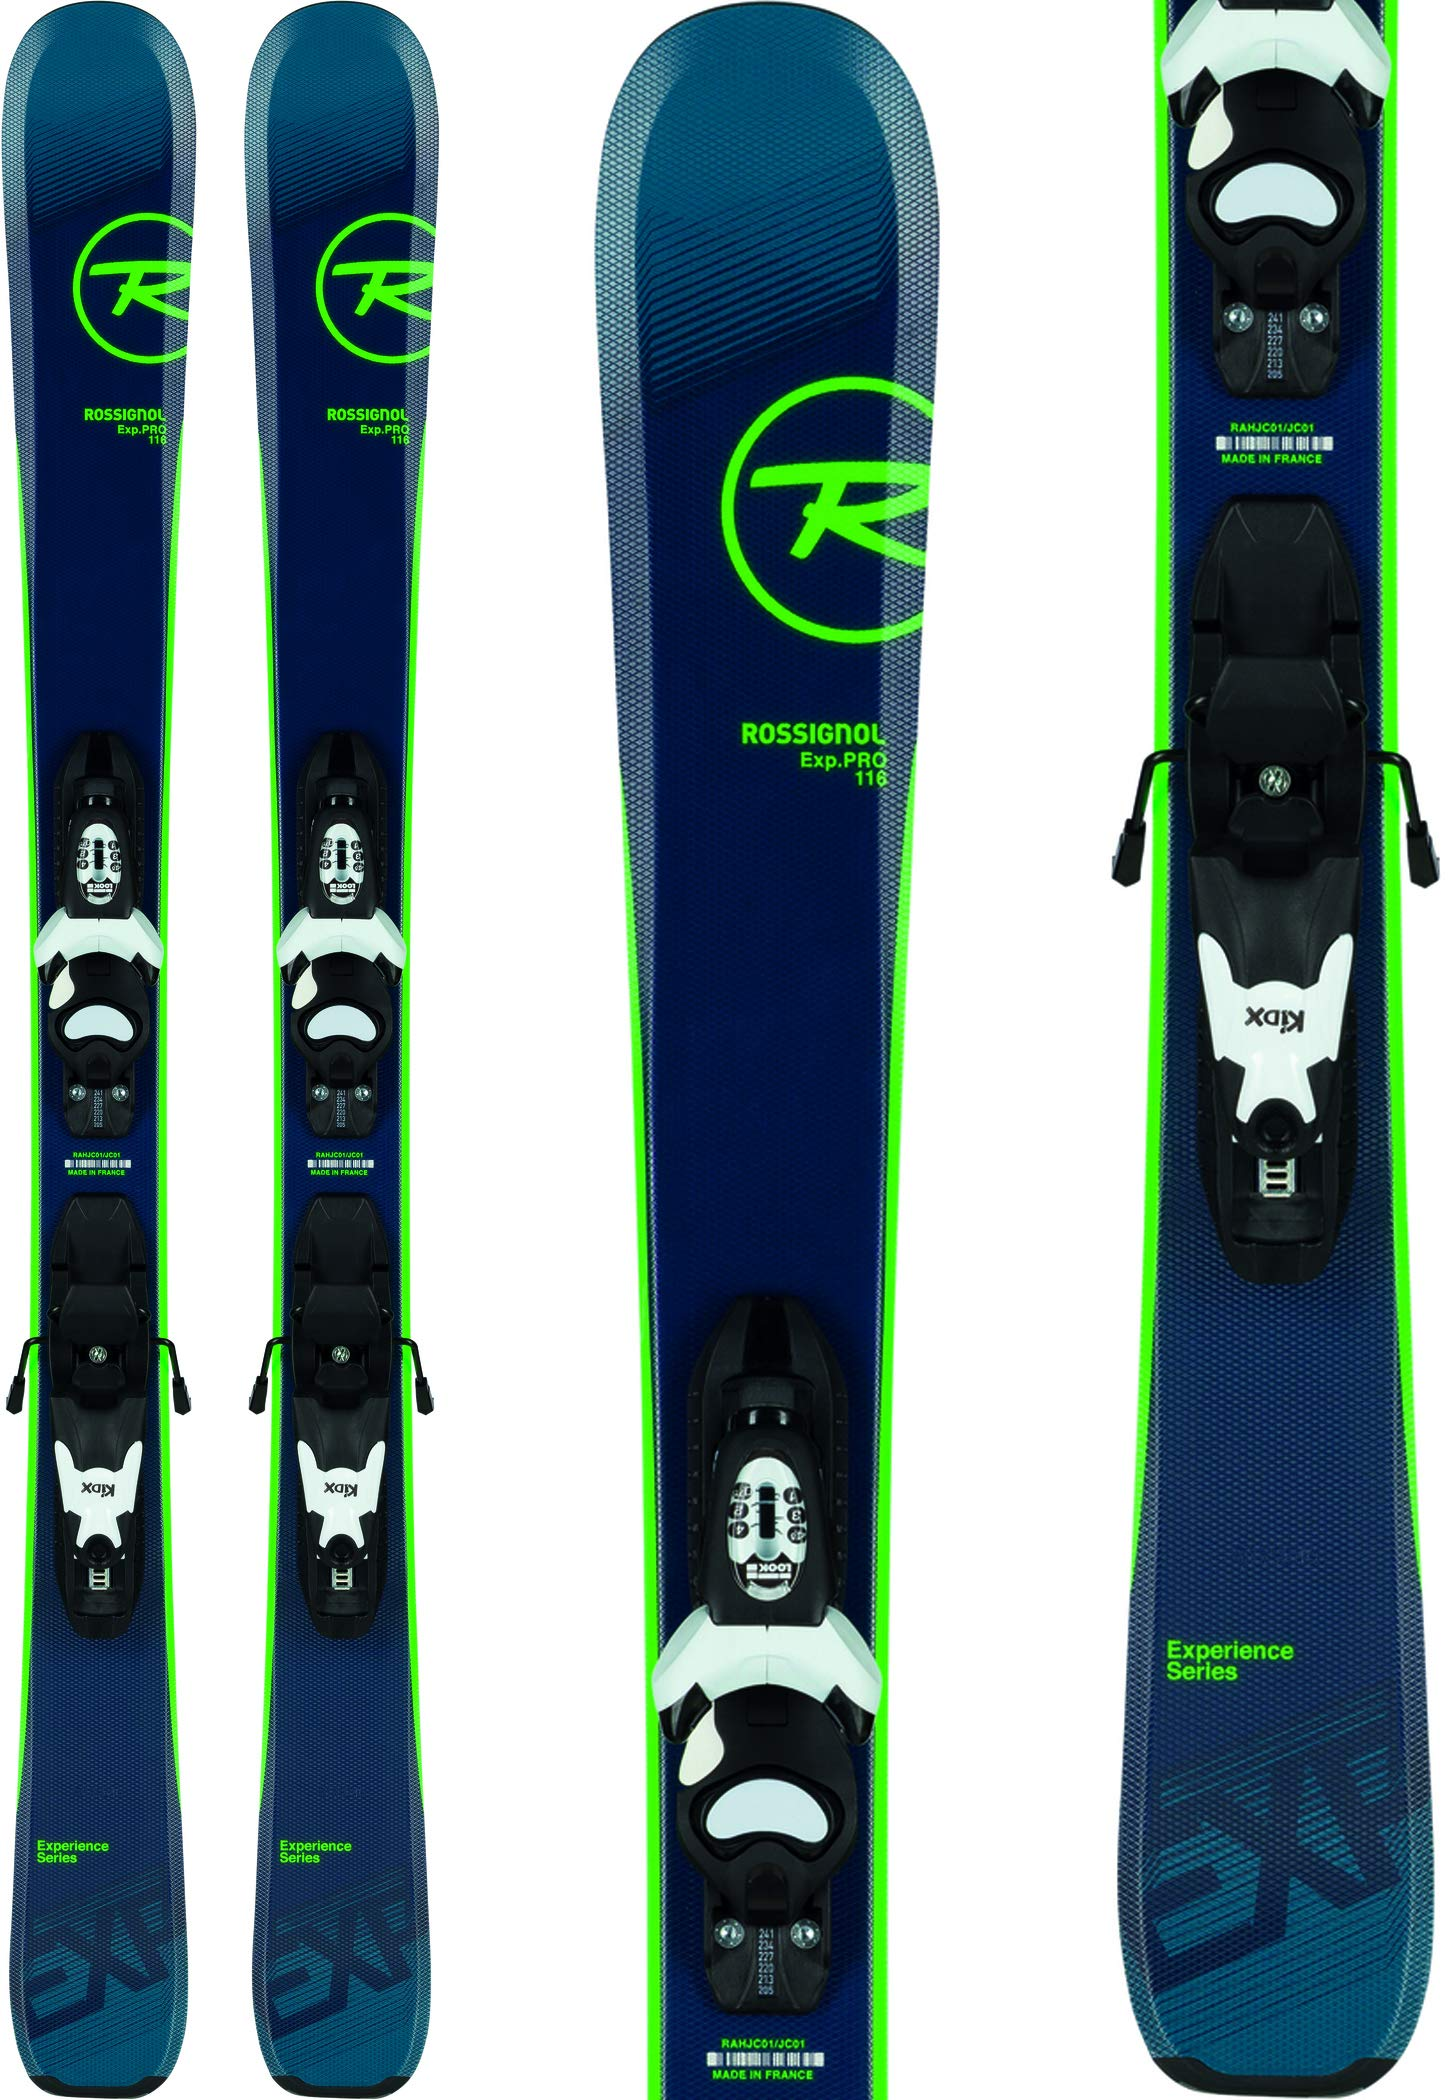 Rossignol Experience Pro/Kid-X 4 Ski Package Kid's Sz 116cm Black/White by Rossignol